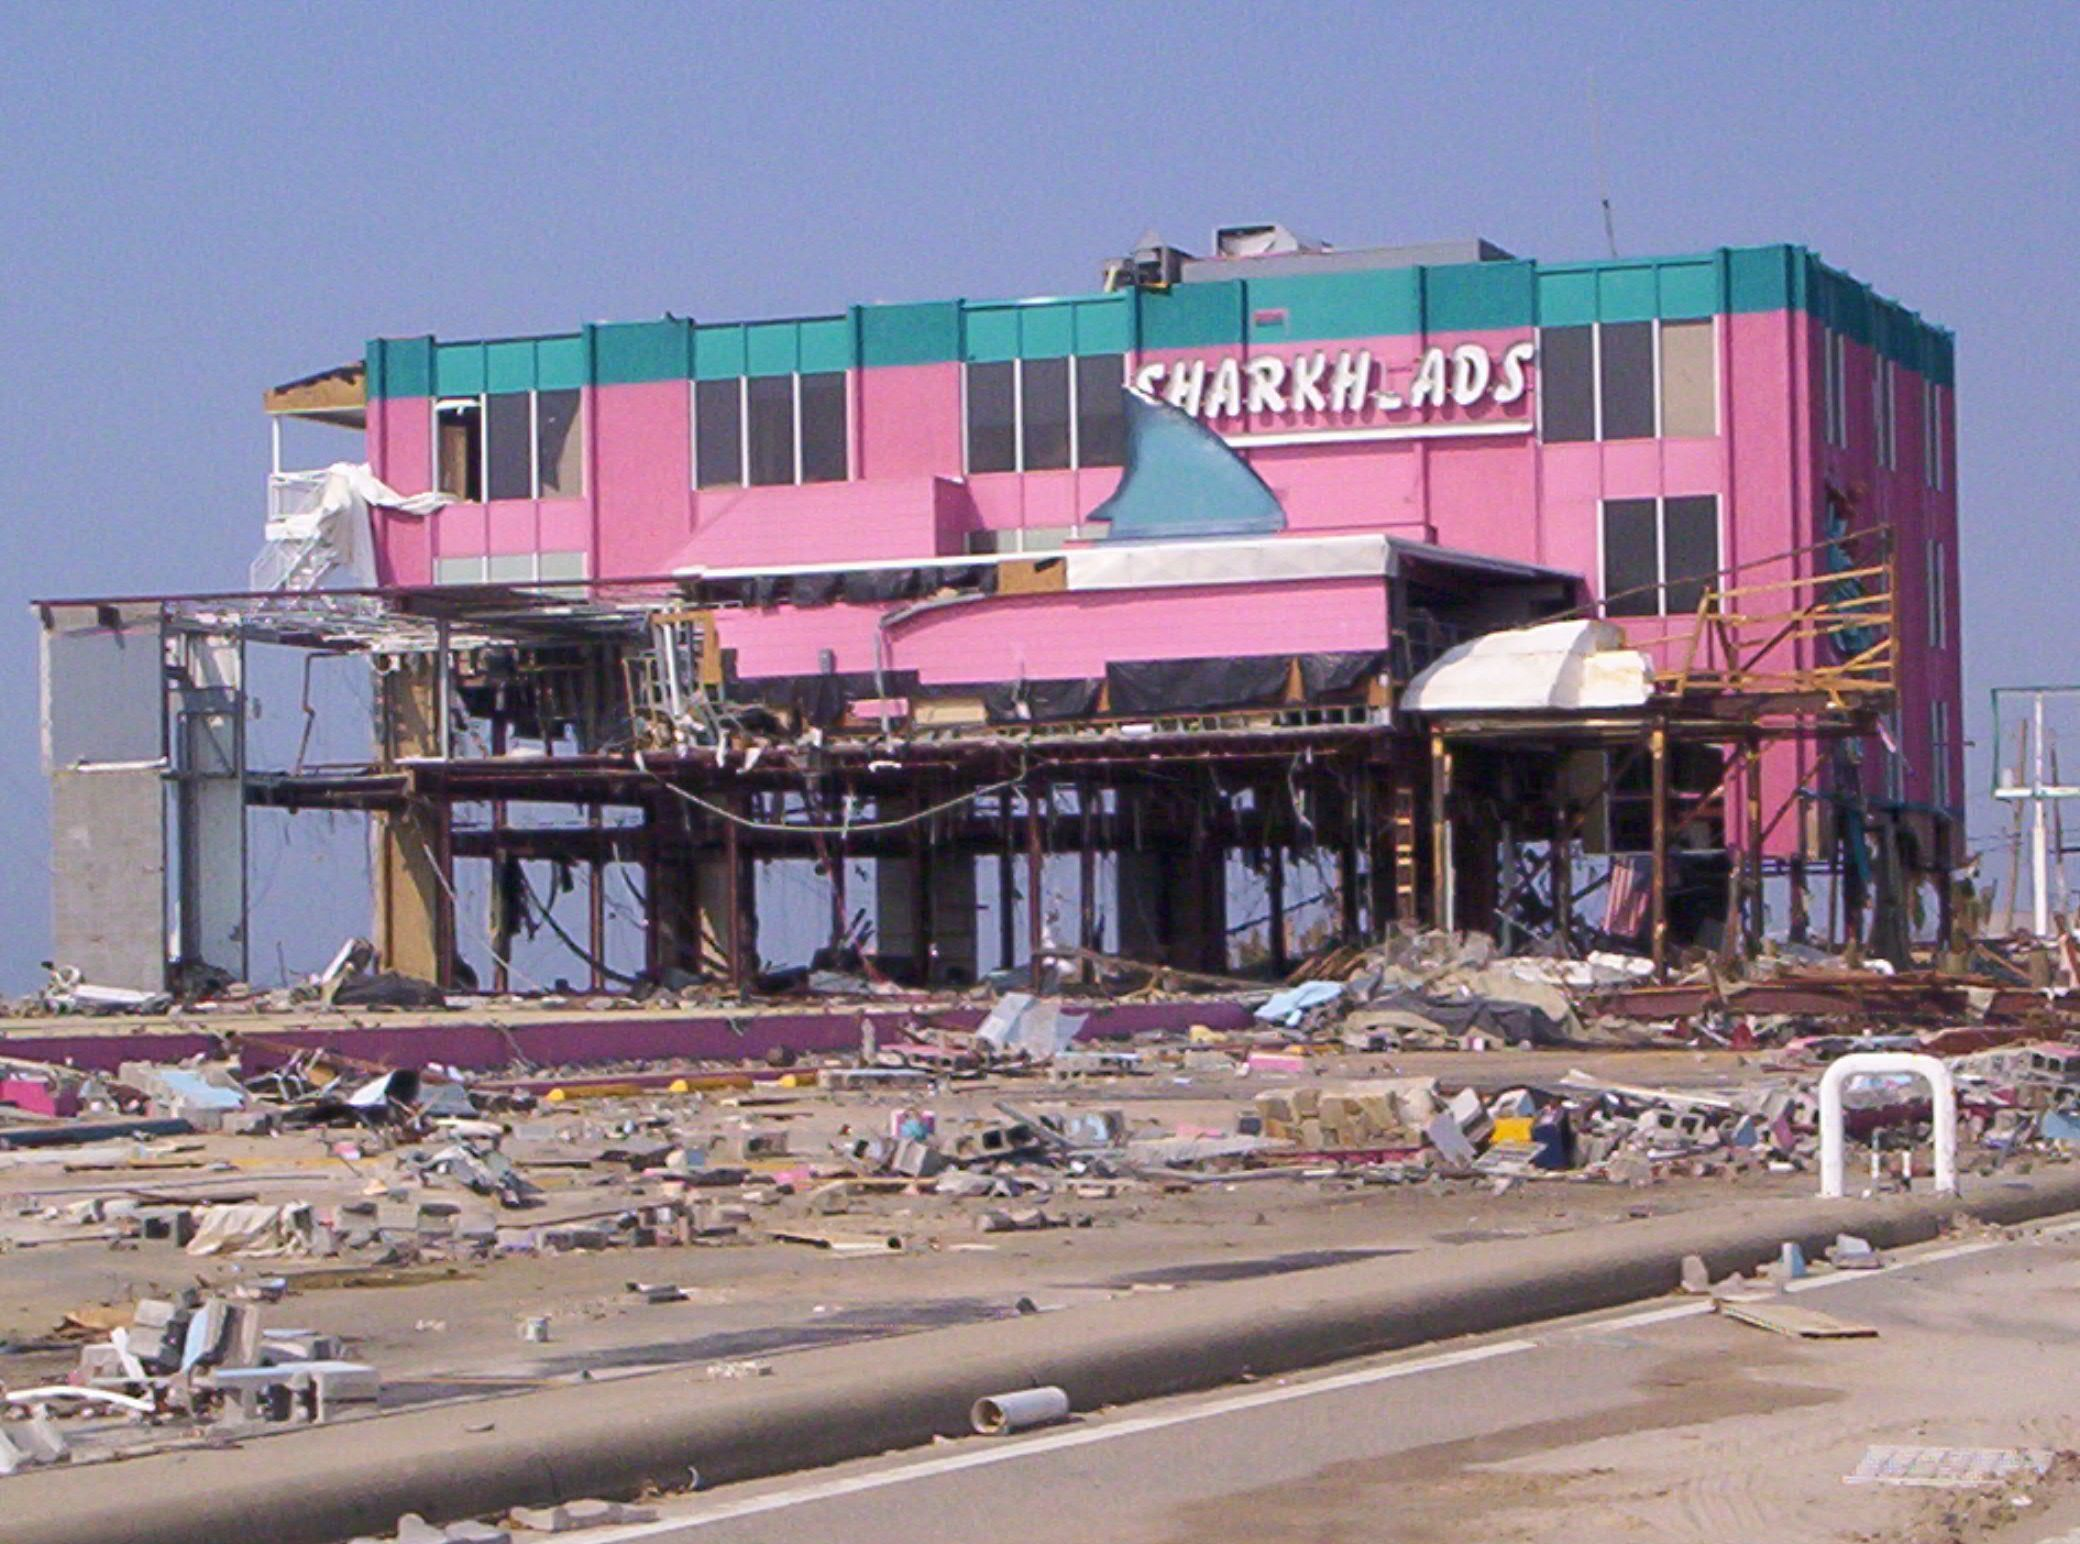 Hurricane Katrina Destroyed Sharkheads Biloxi Ms This Was Right Across The Street From Our Old Apartments We Hurricane Damage Storm Surge Hurricane Katrina